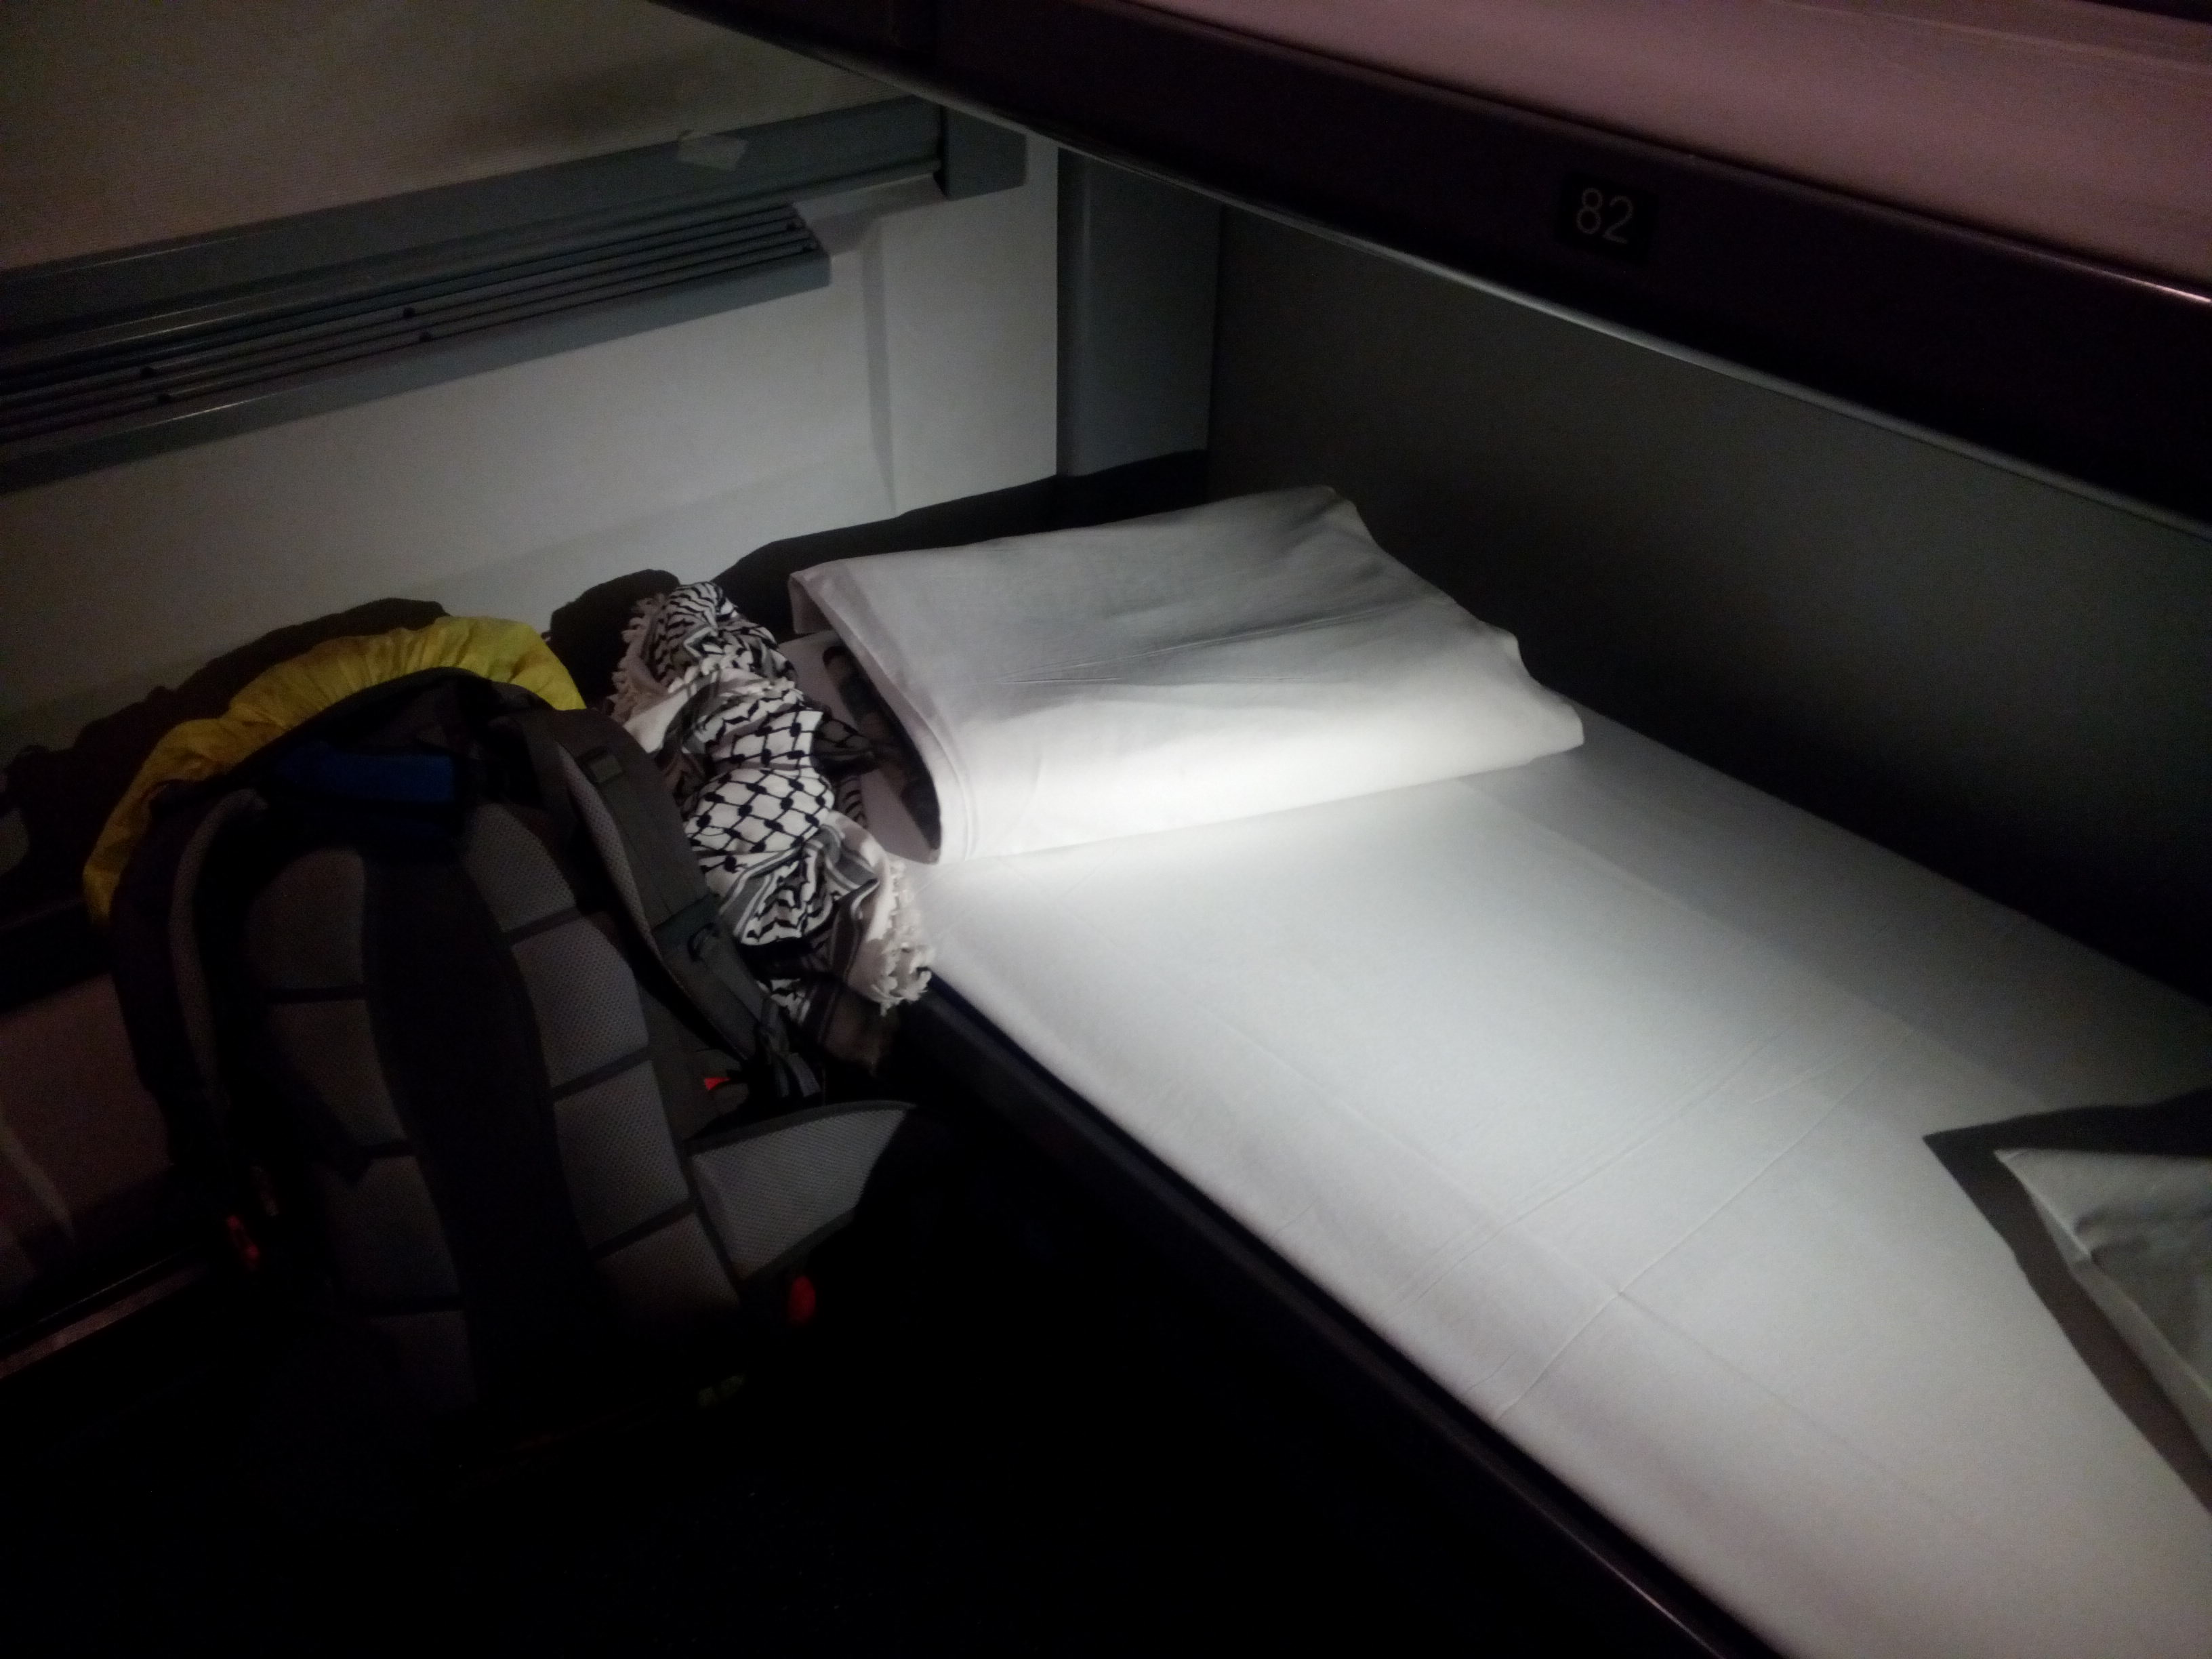 A narrow bottom bunk in a train cabin with a backpack next to it